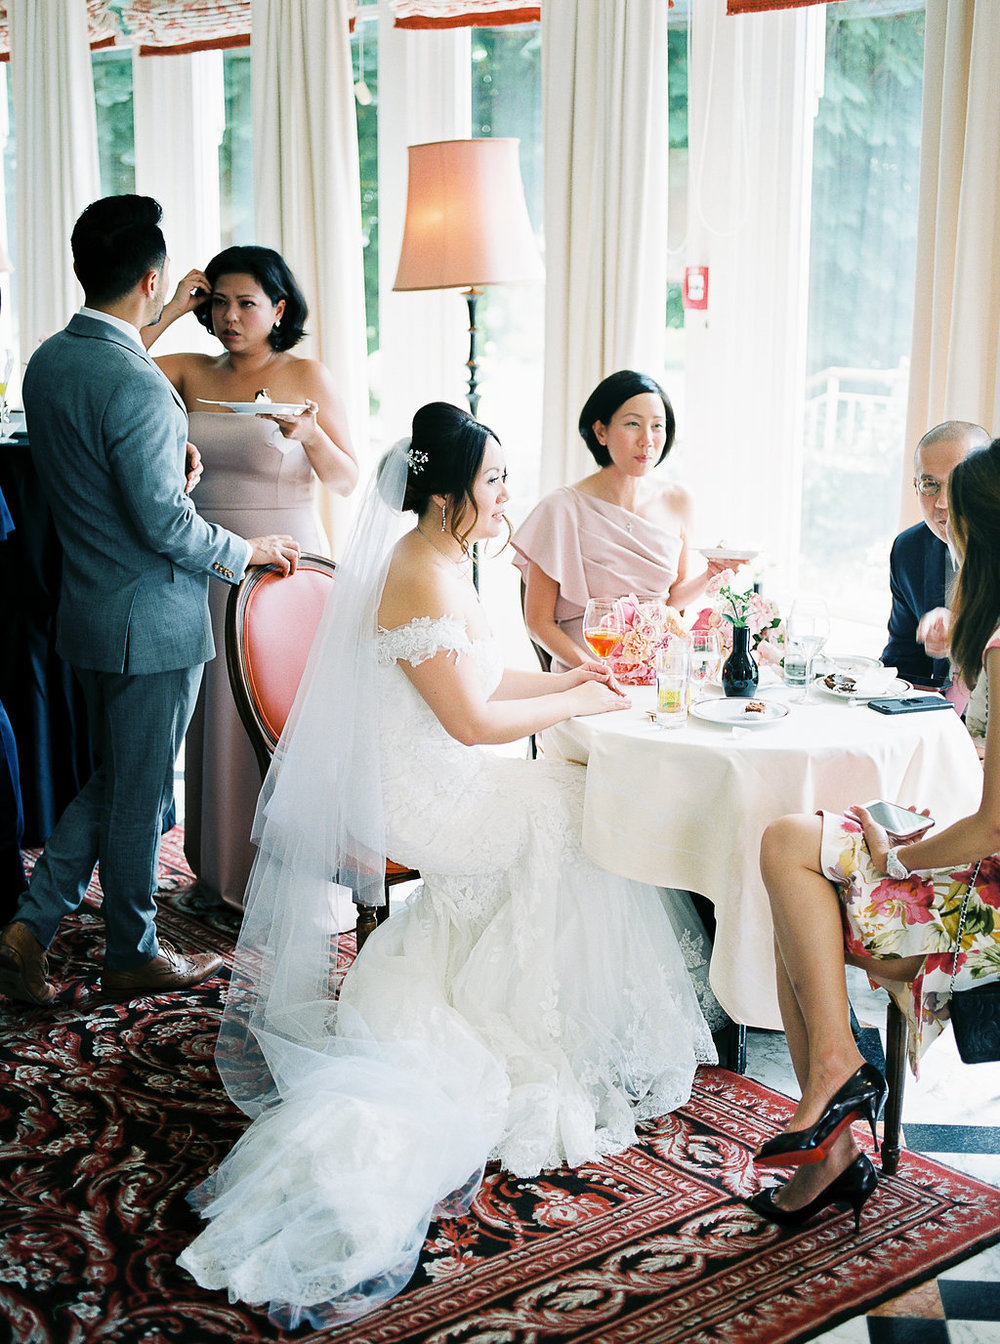 Luxe Navy and Pink Wedding at Schloss Fuschl in Austria by Tanja Kibogo8.JPG